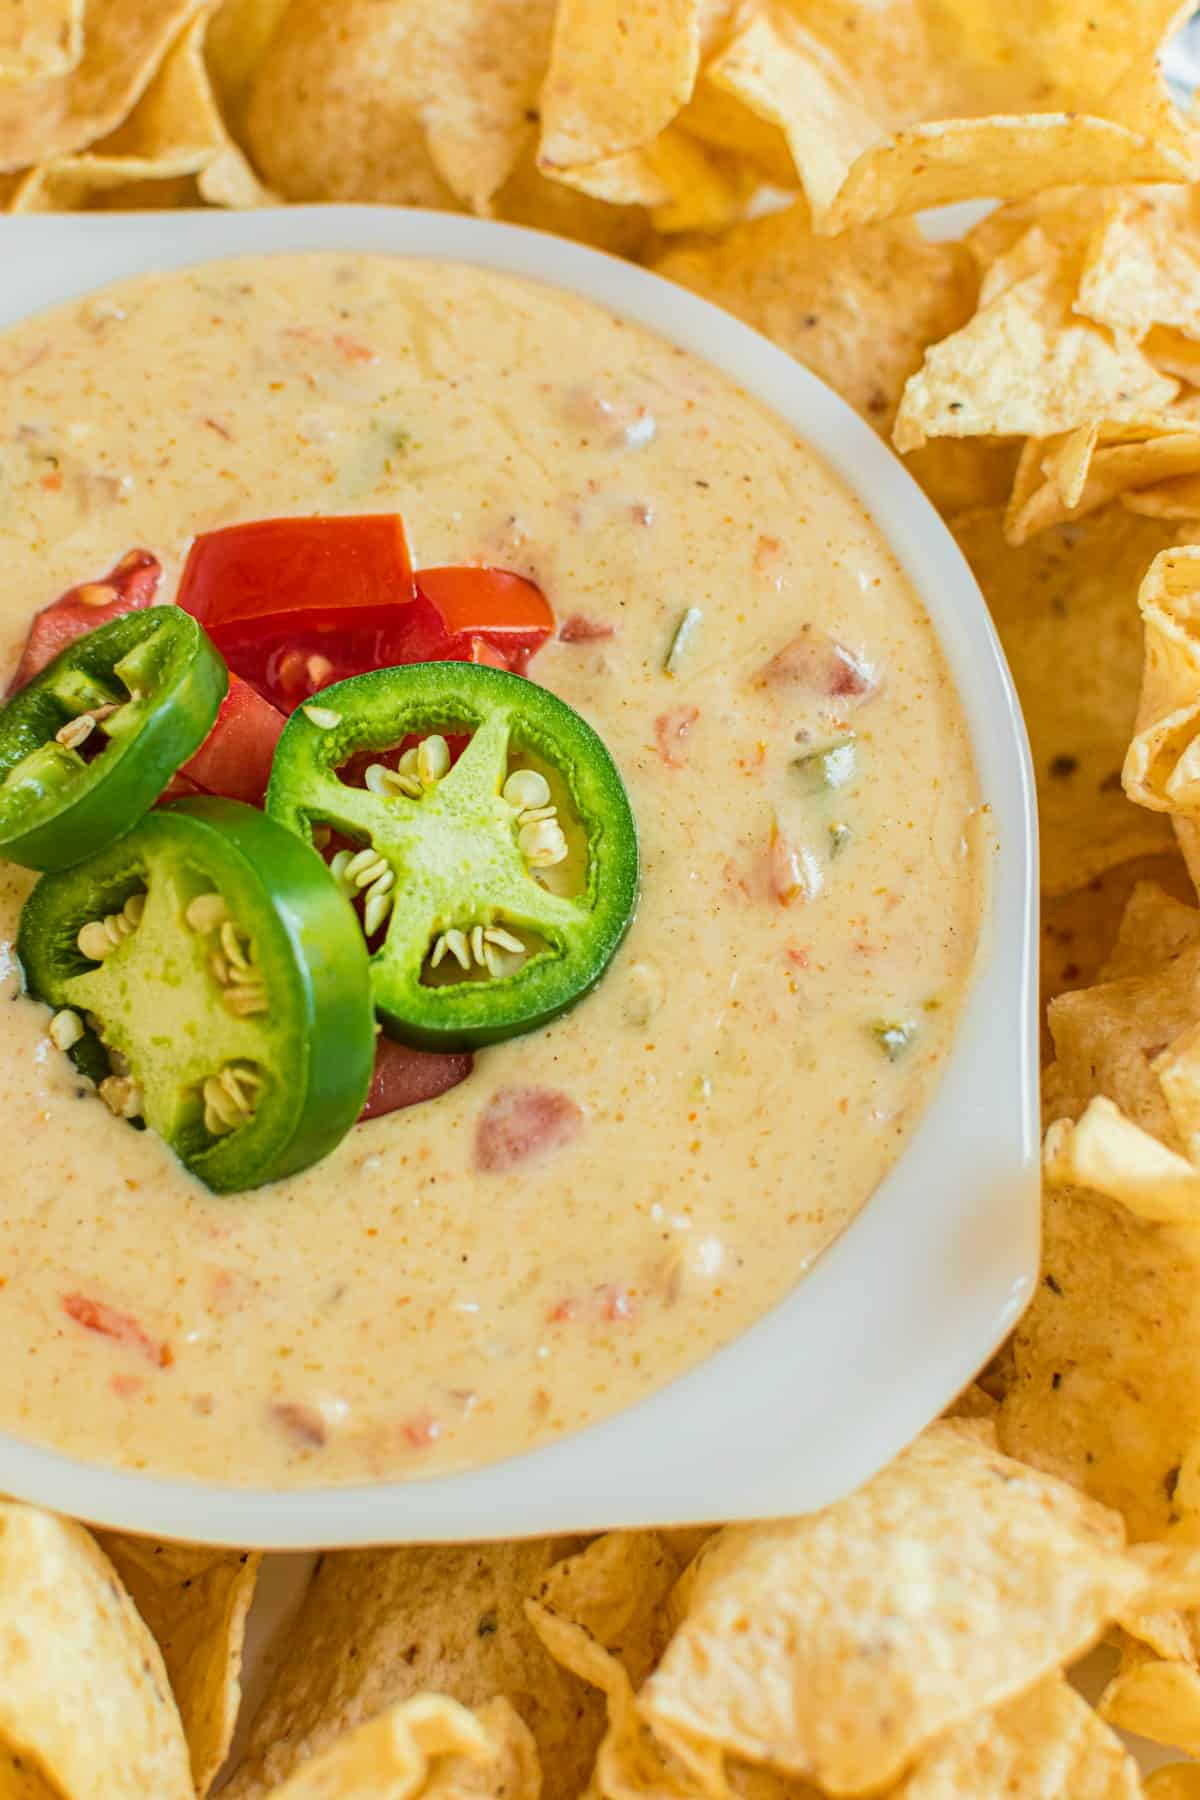 Platter of tortilla chips with a white bowl of queso in the middle. Garnish of jalapeno and rotel tomatoes on the queso.